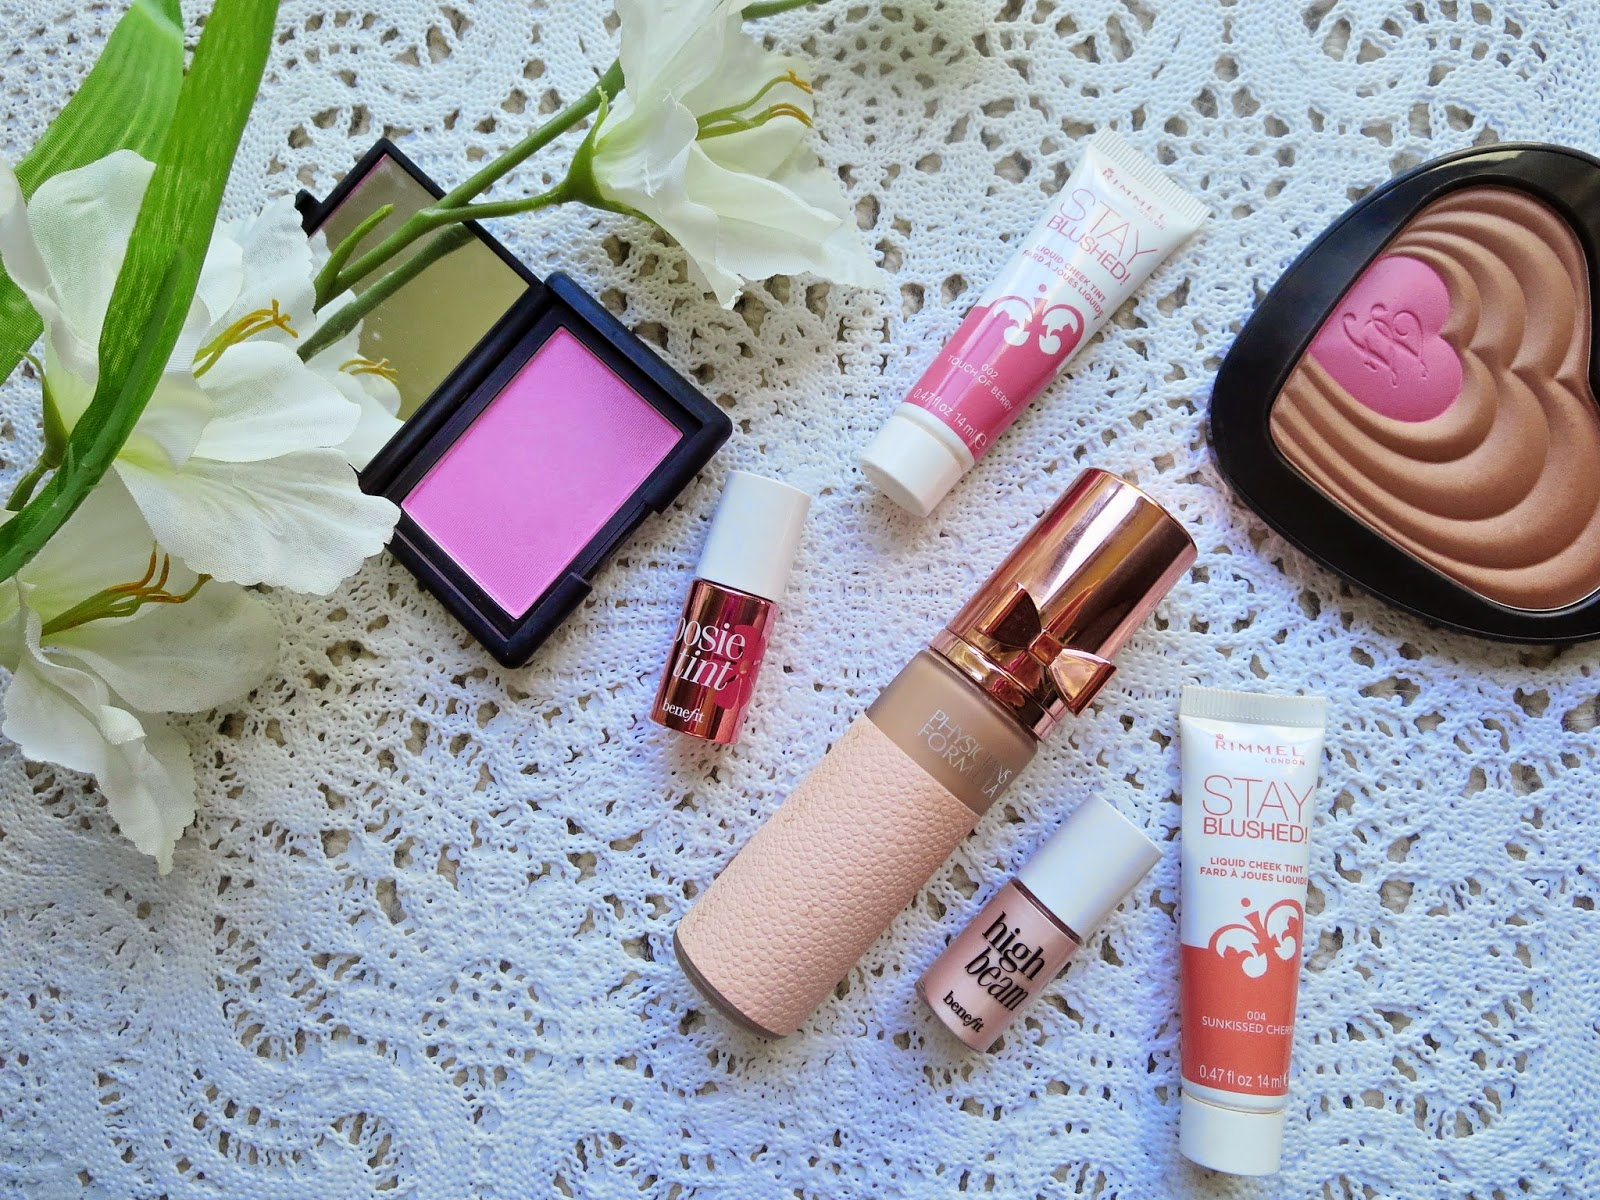 a picture of spring favorites for face ; nars gaiety, posie tint, high beam, touch of glow foundation, soul mates ross rachel, stay blushed sunkissed cherry, pop of berry